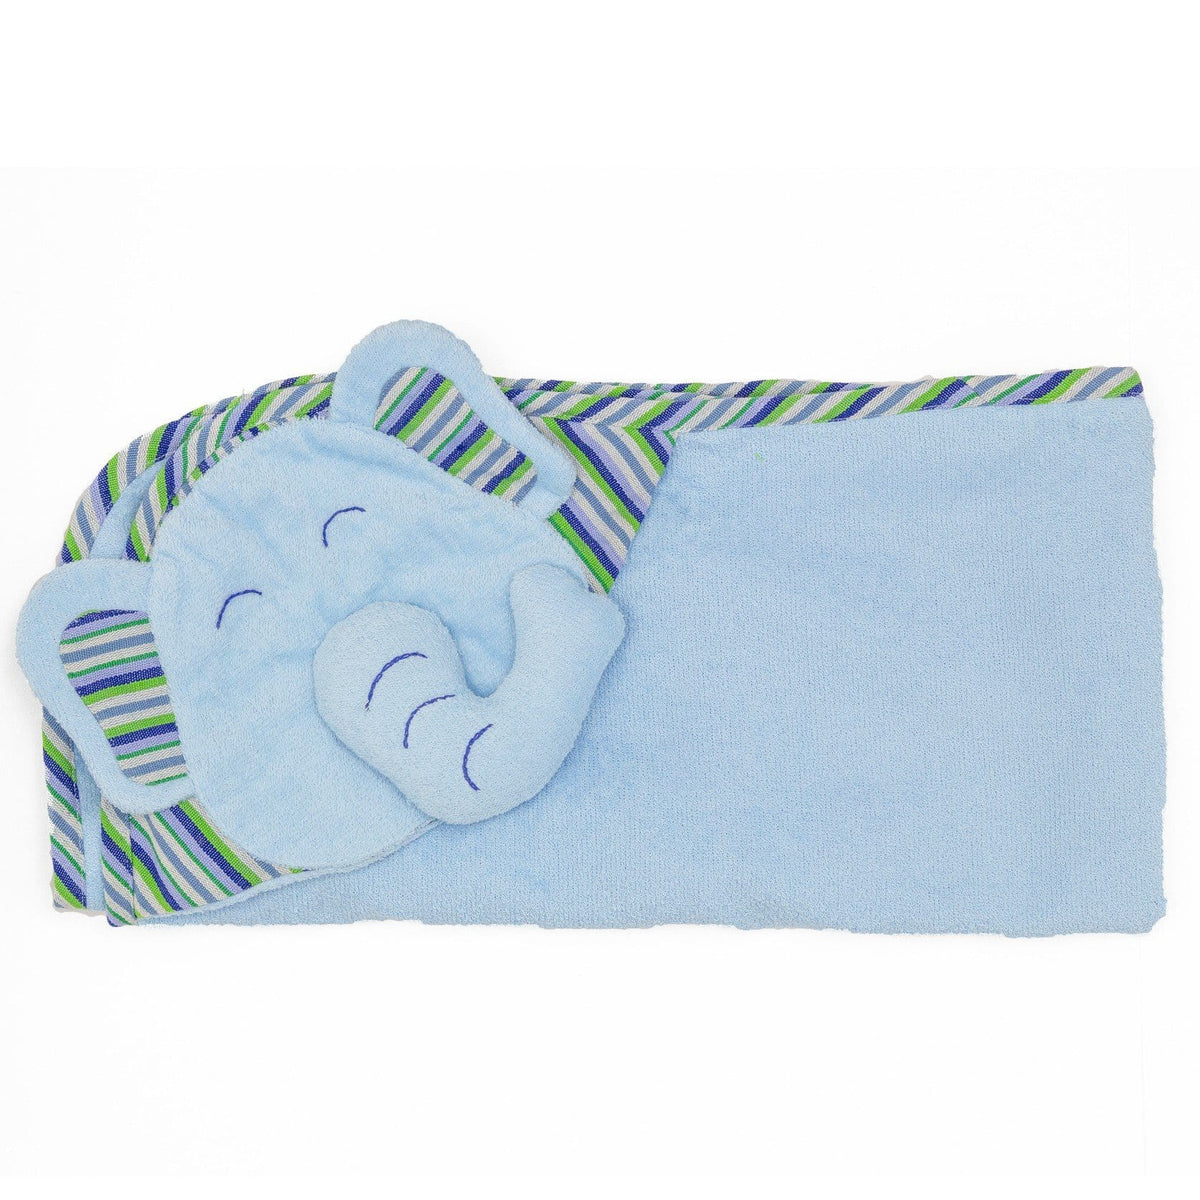 Kids Hooded Elephant Towel - Blue